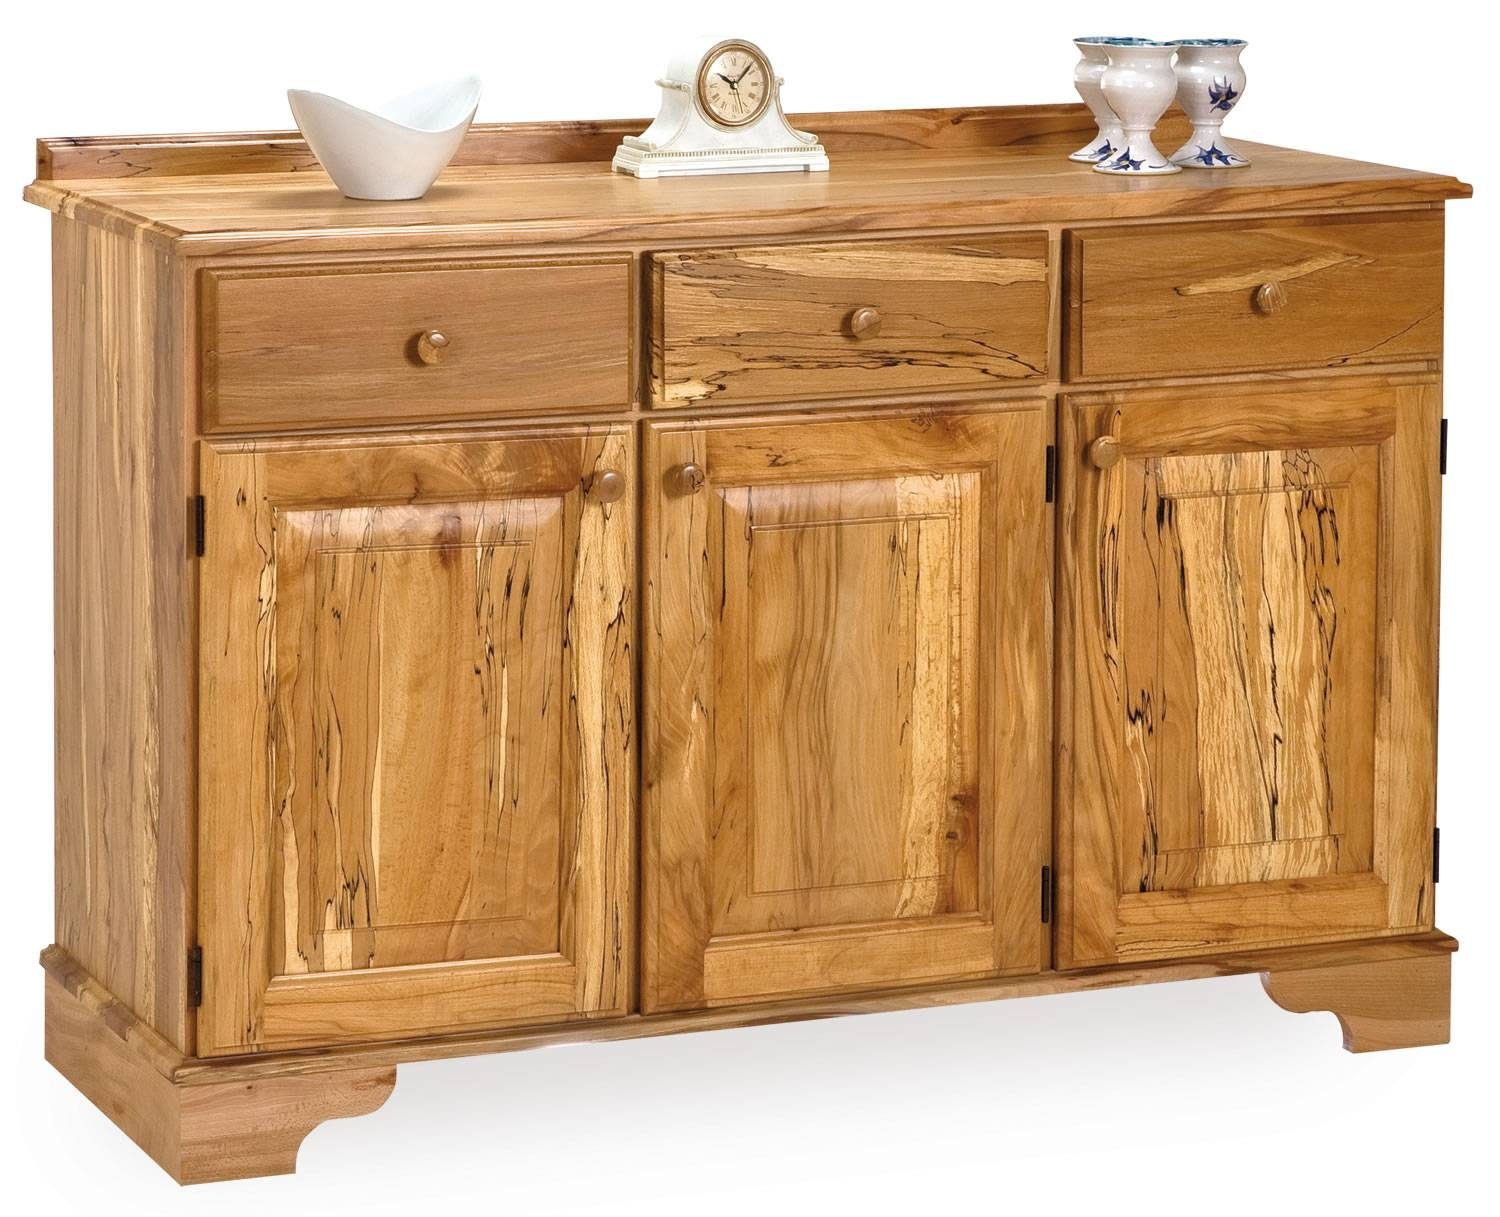 Index Of /images/sideboards pertaining to Beech Sideboards (Image 18 of 30)